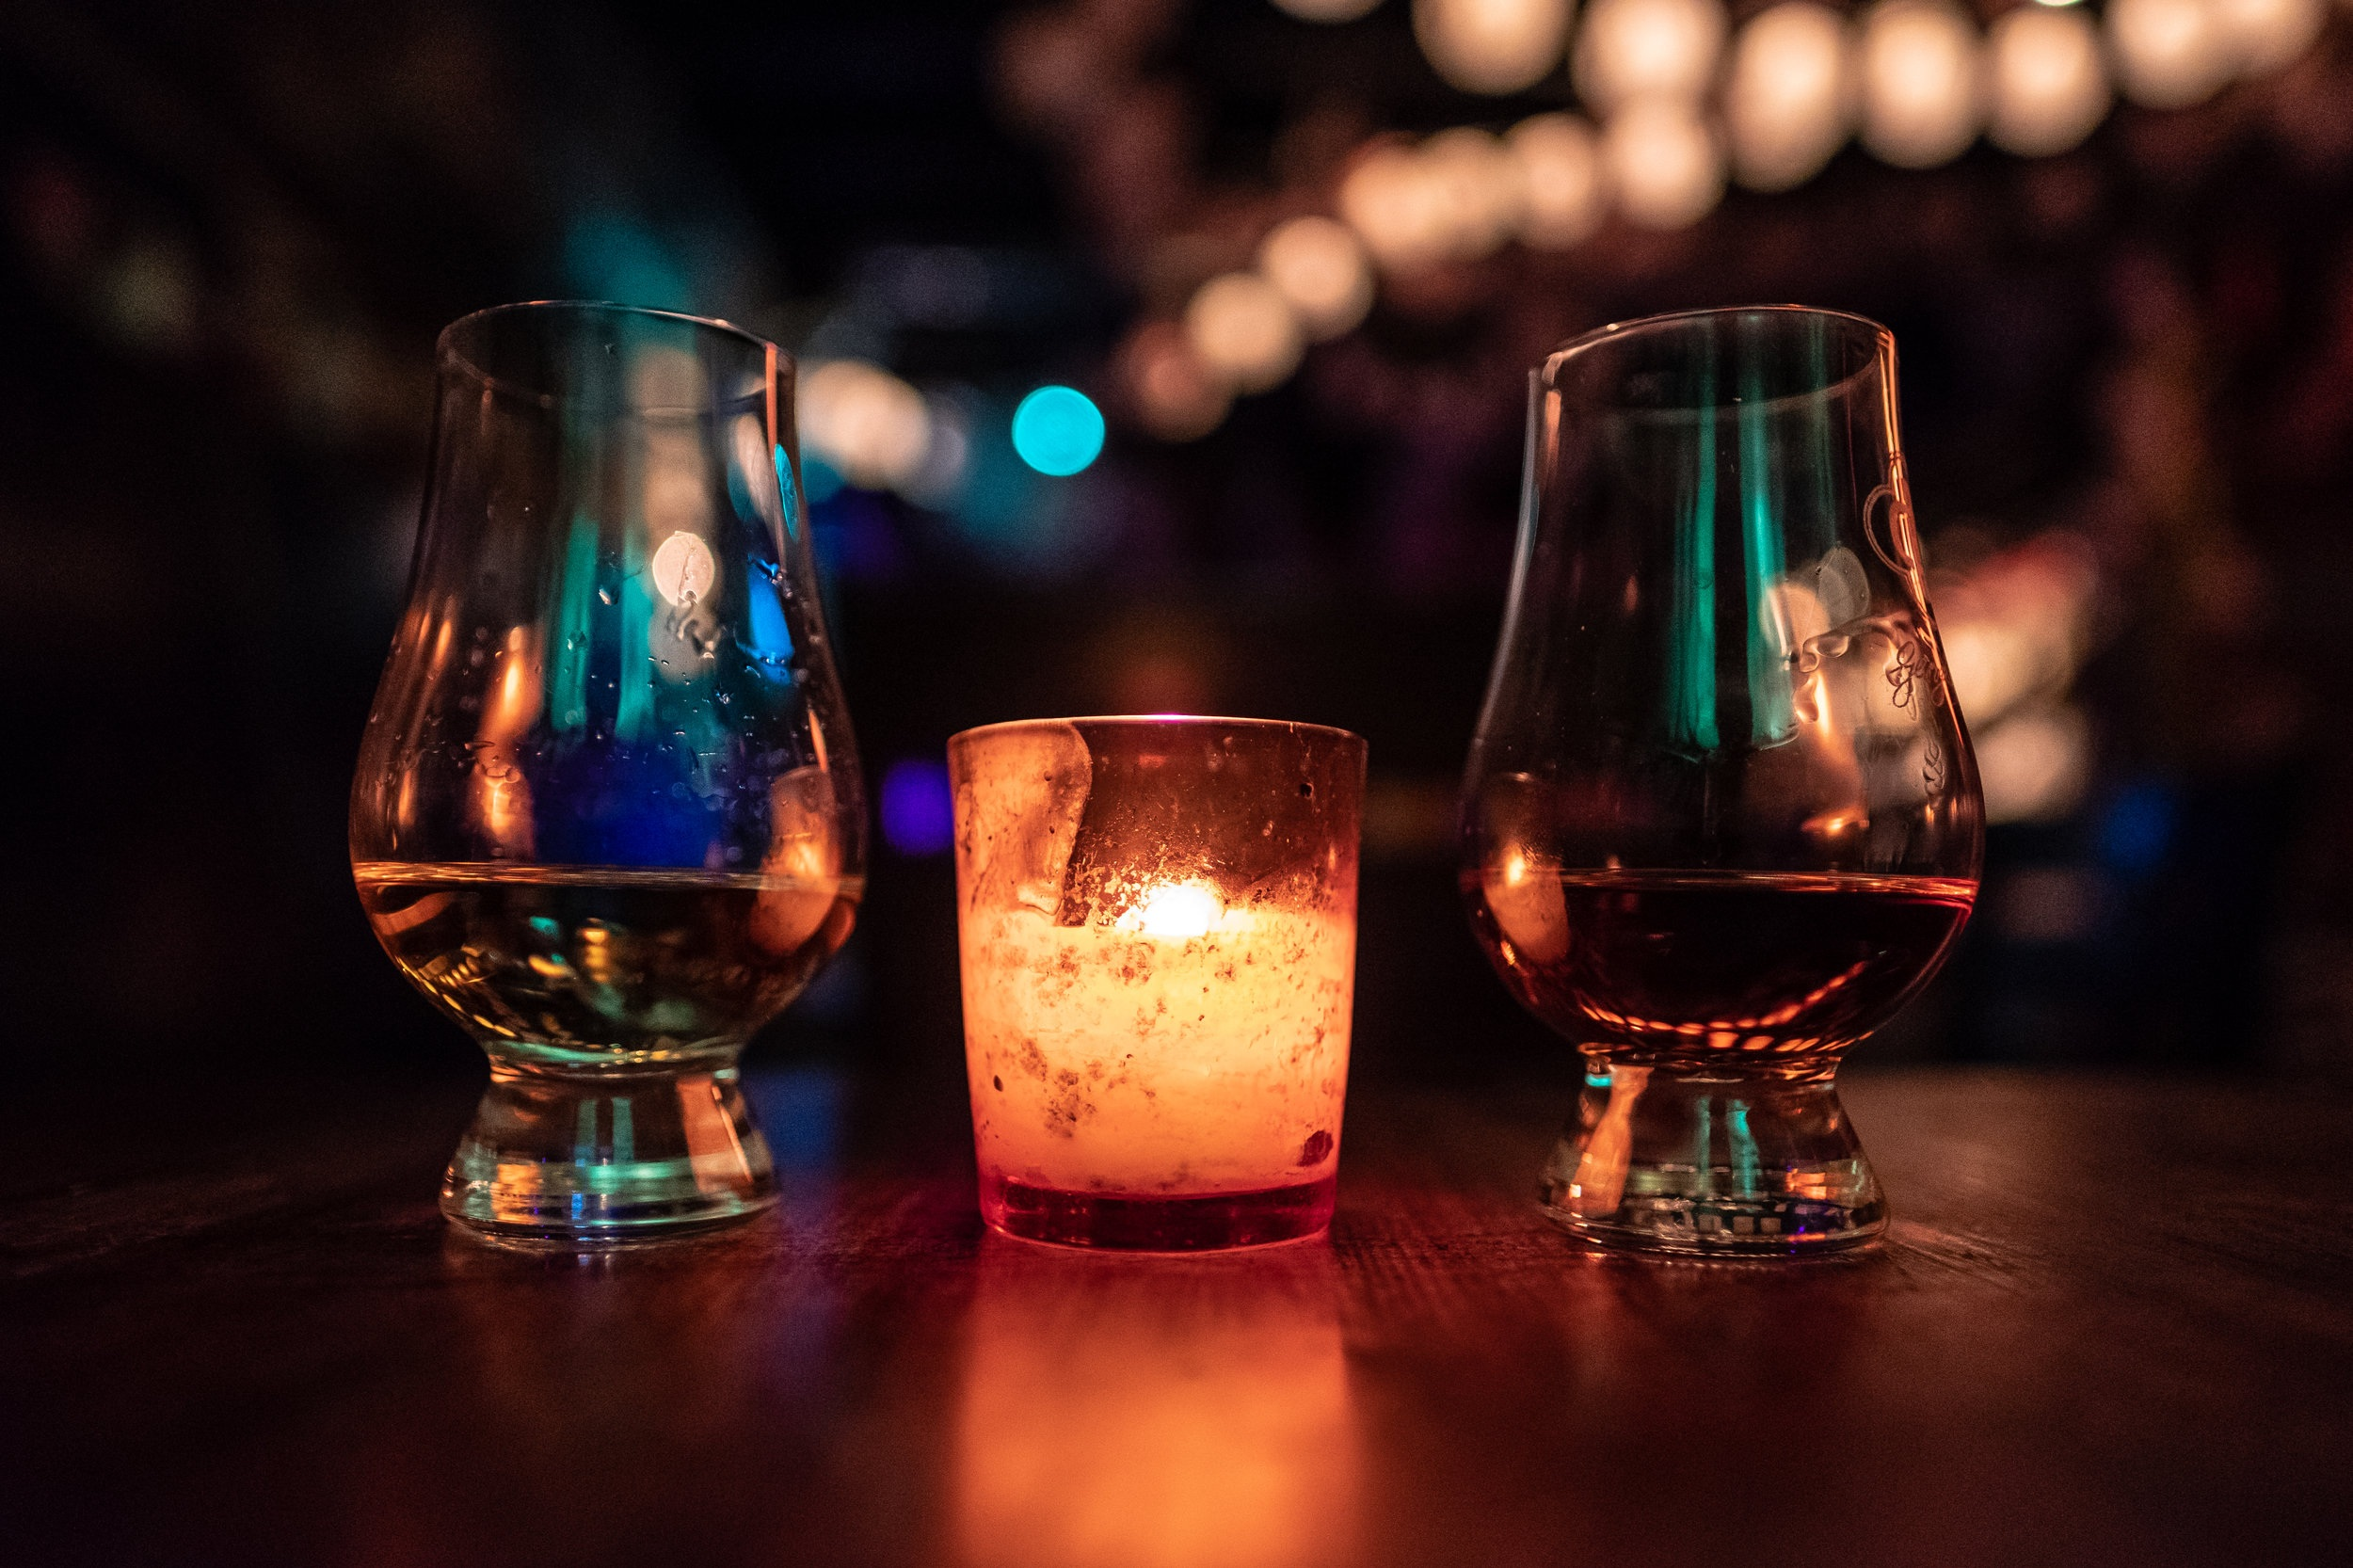 SENSIBLE SCOTCH TASTING - fine scotch selection & accoutrementsstarting at $21 per person